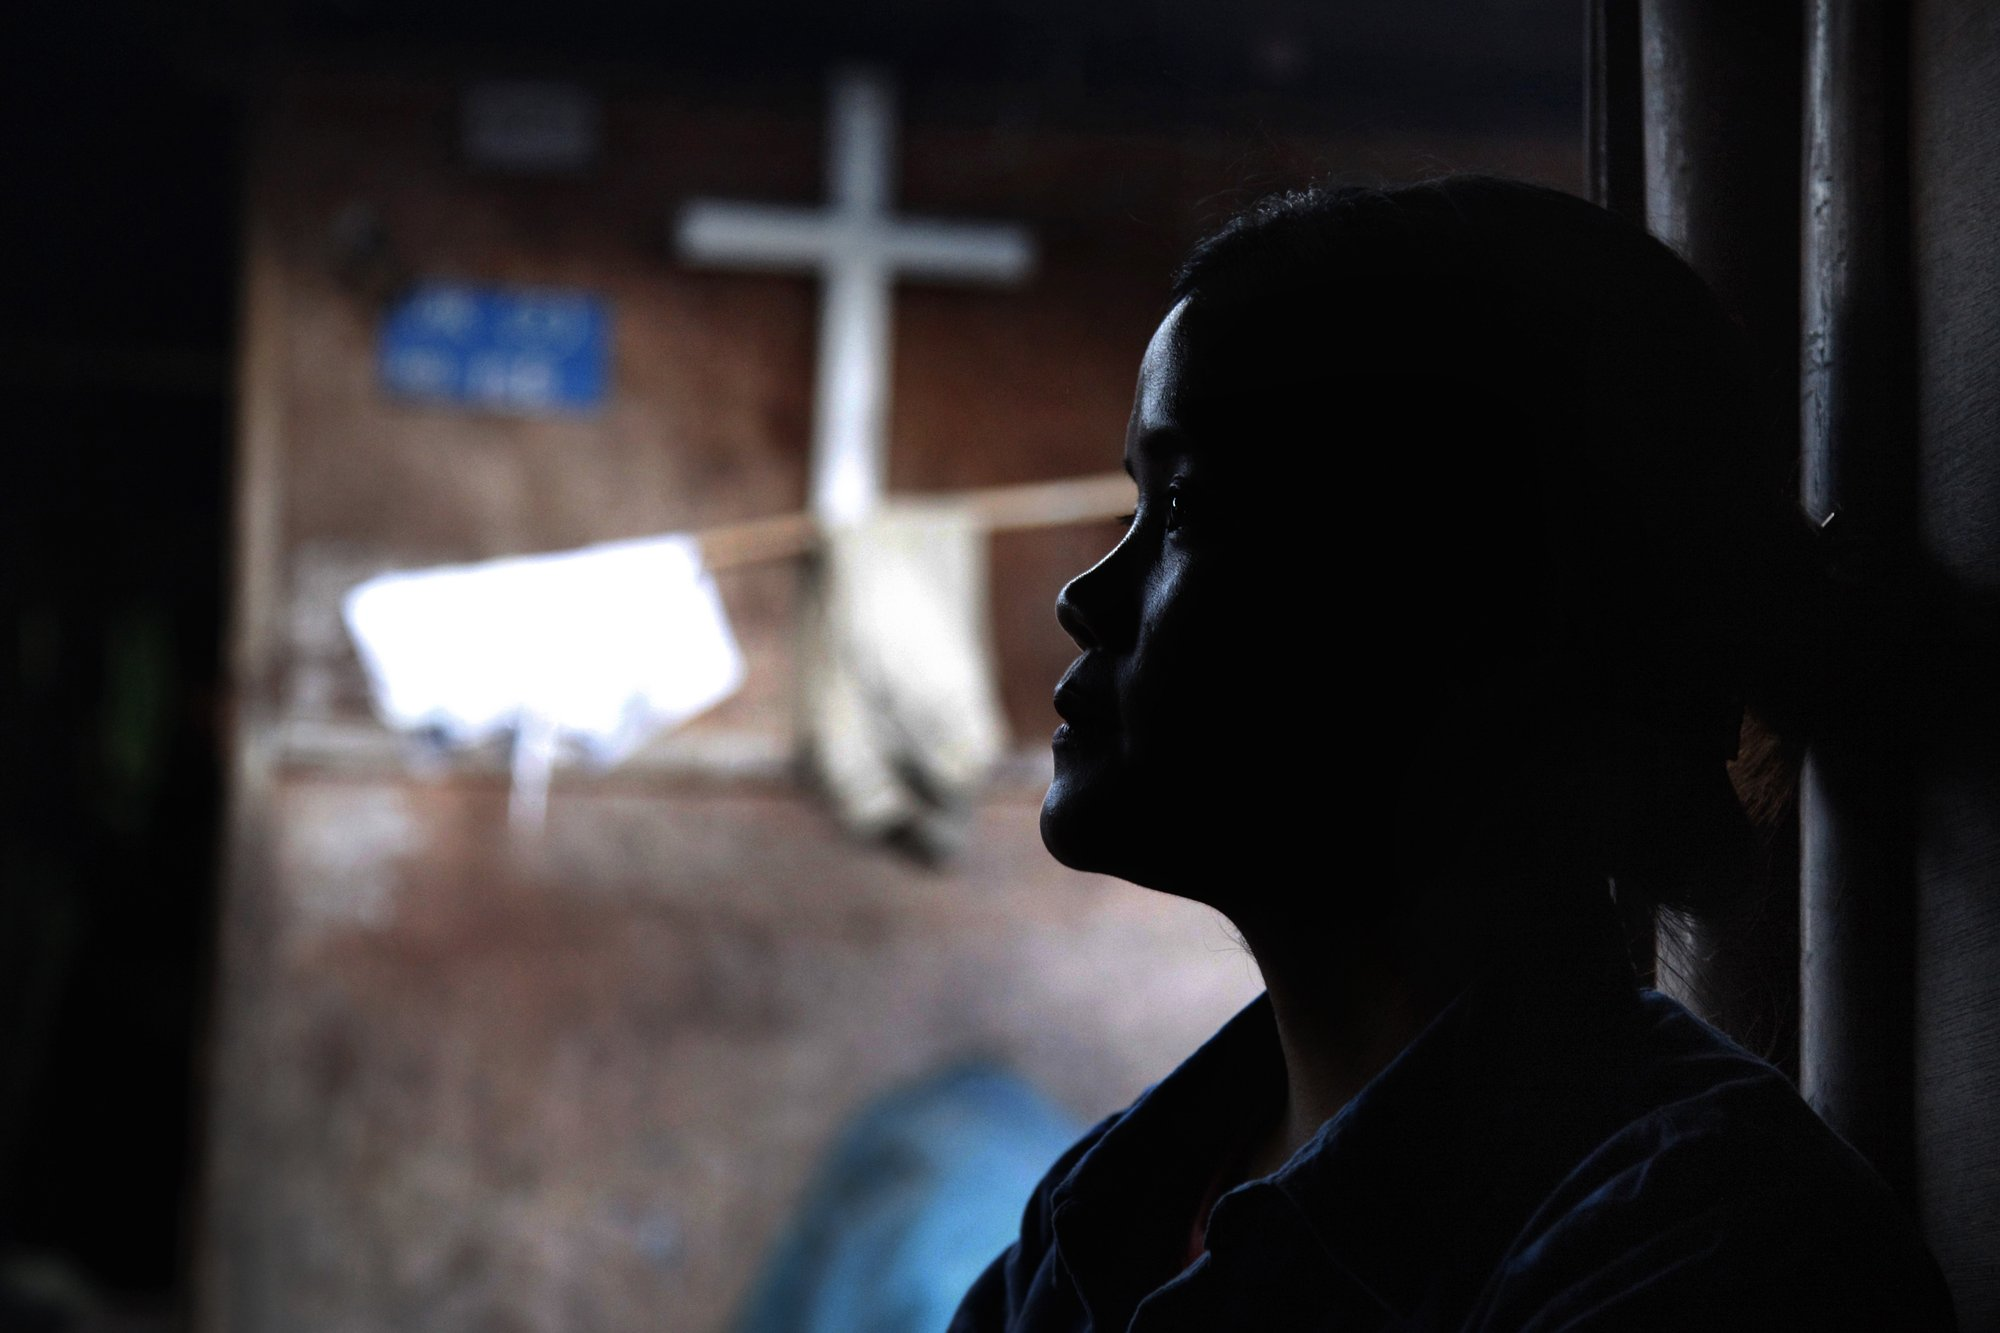 Report: Myanmar, China failing to stop 'bride' trafficking